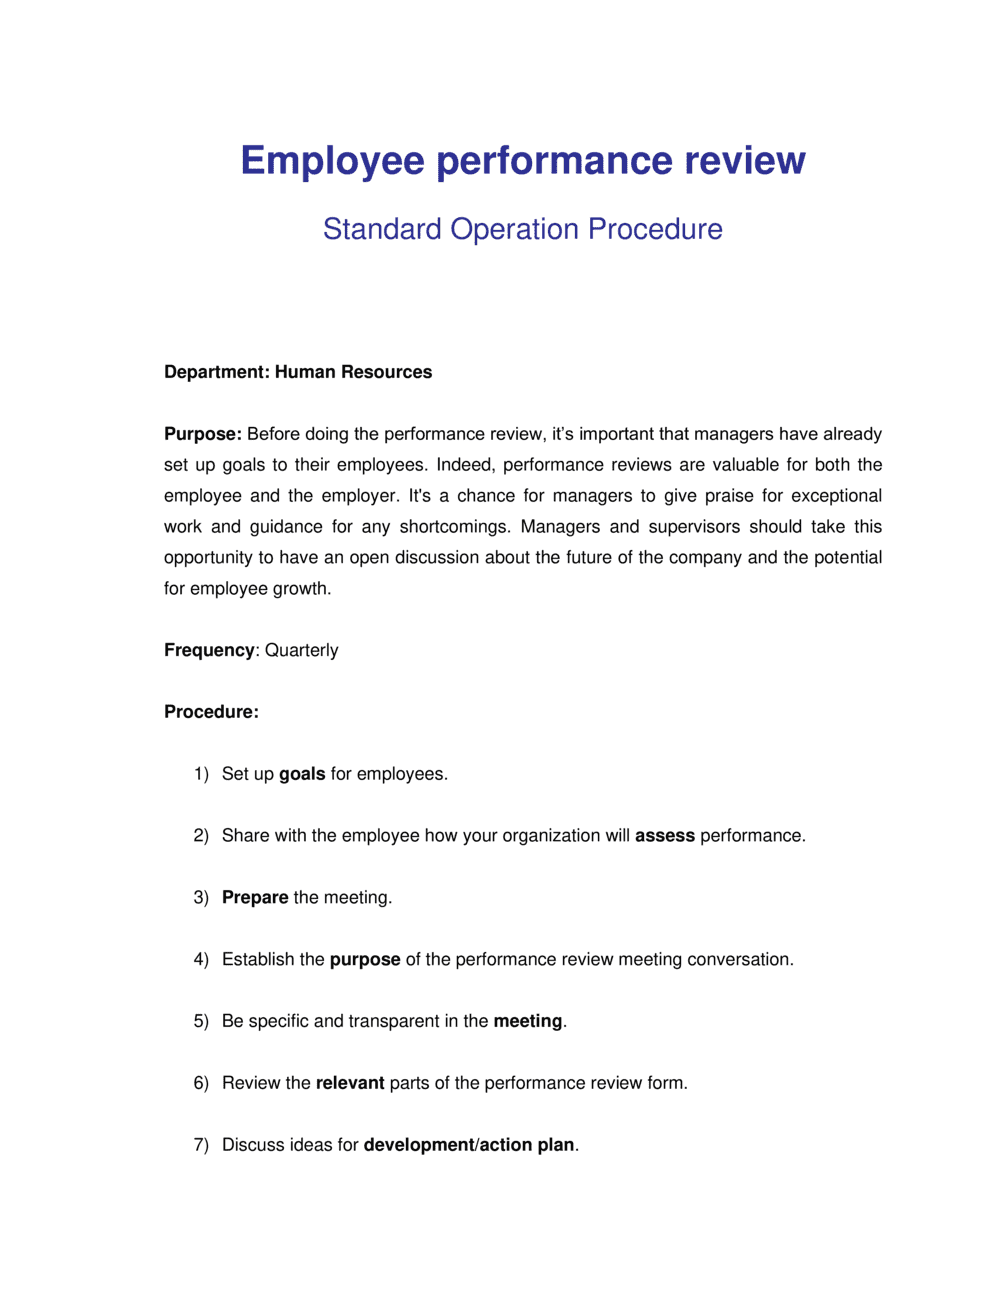 Business-in-a-Box's How to Review Employee Performance